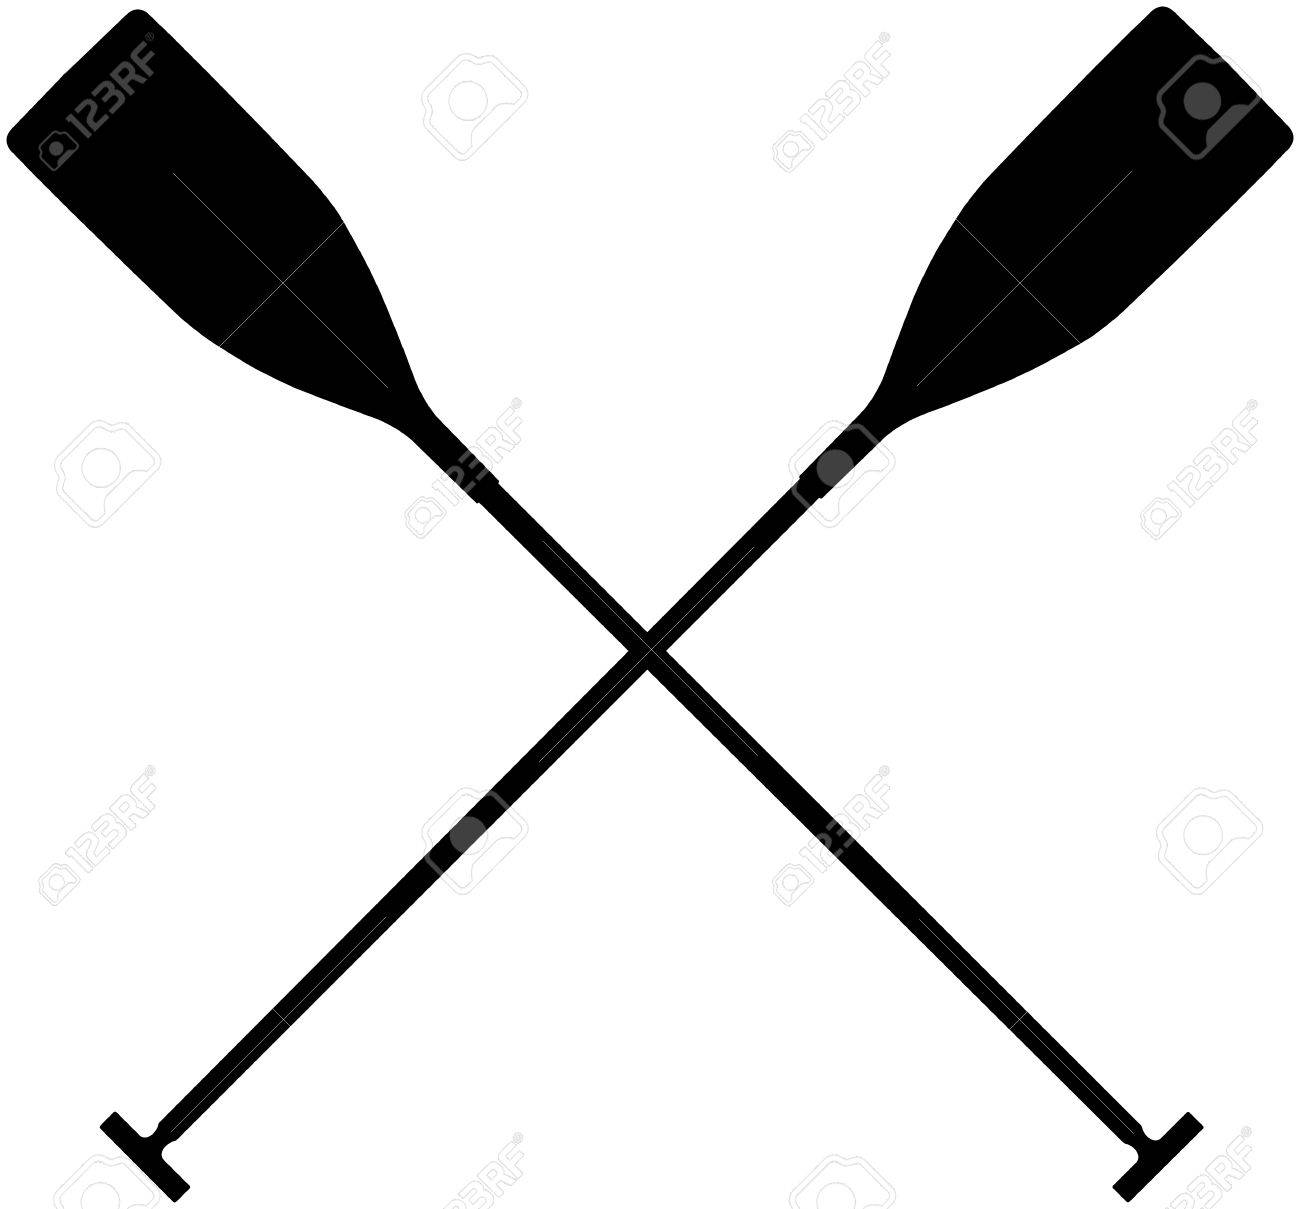 Real Sports Paddles For Canoeing Black Silhouette Criss Cross Stock Vector